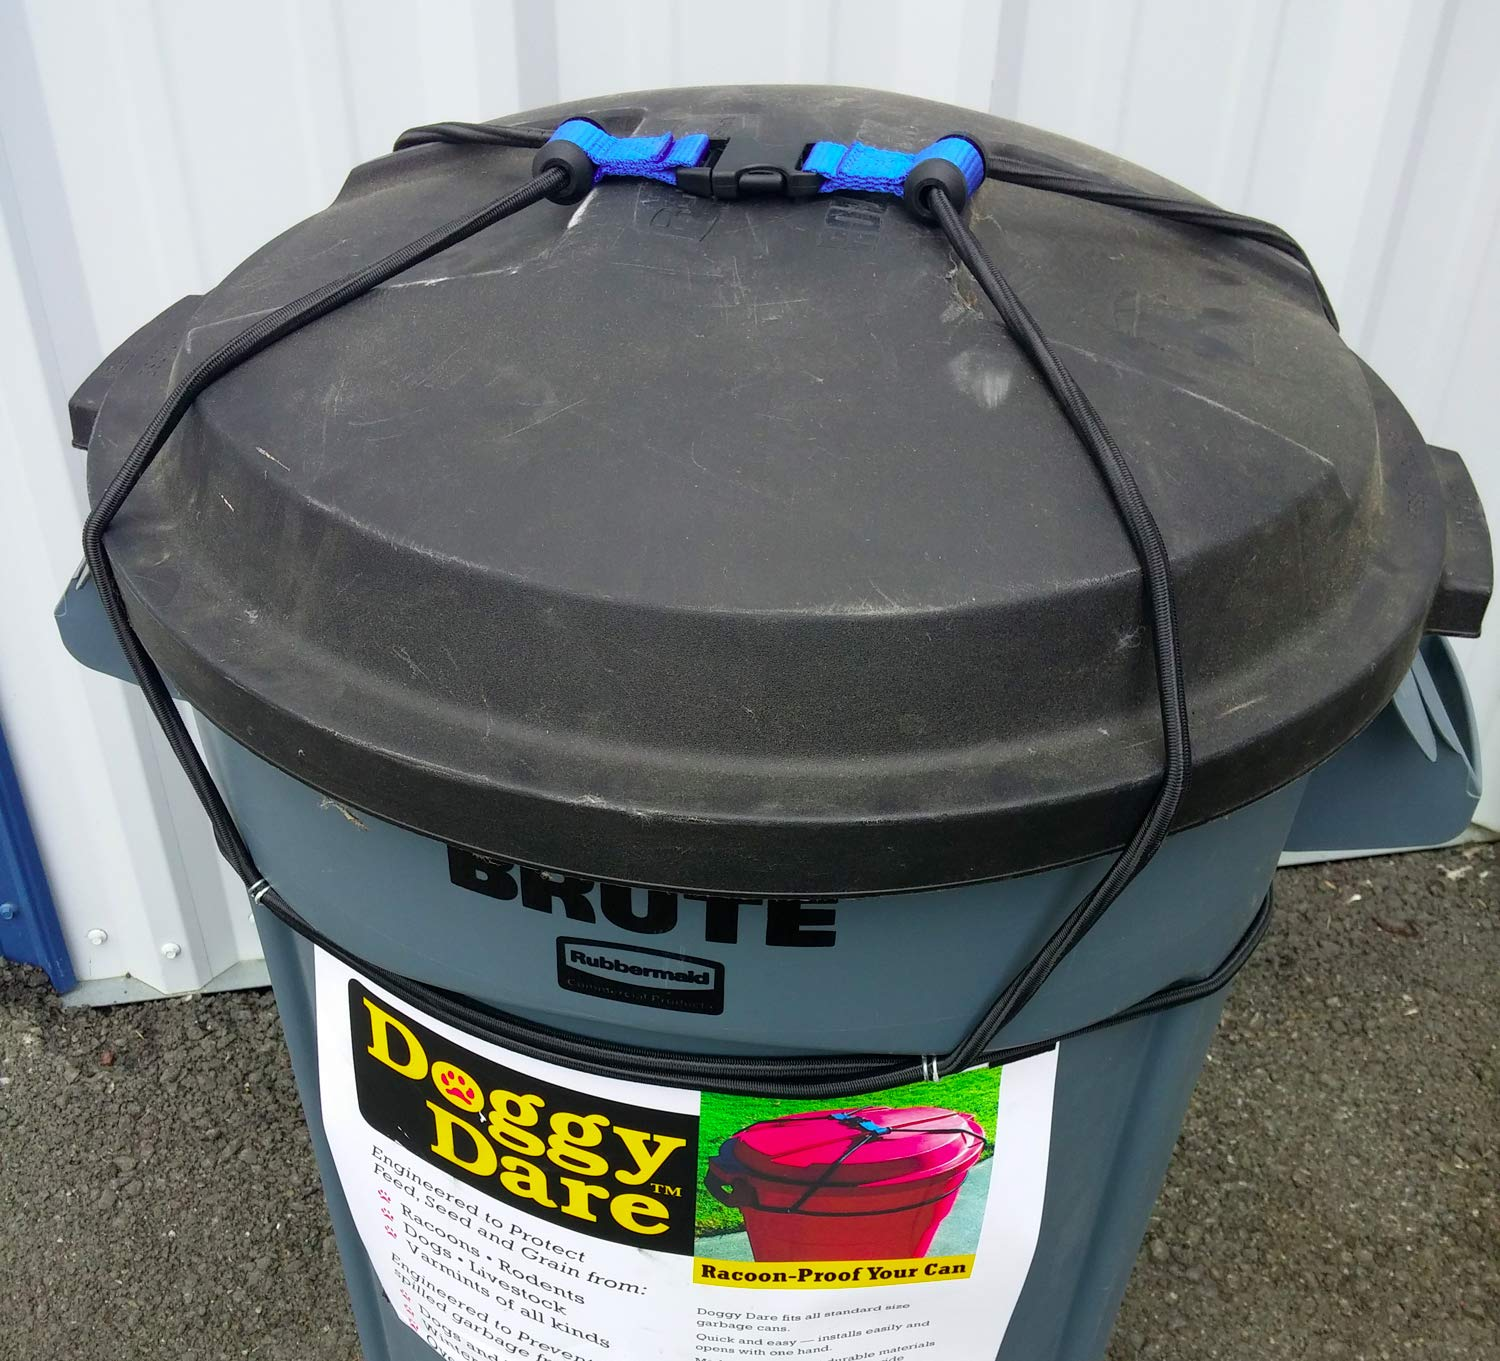 Doggy Dare Trash CAN Lock fits 33 Gallon Trash cans Lasso Security Cables